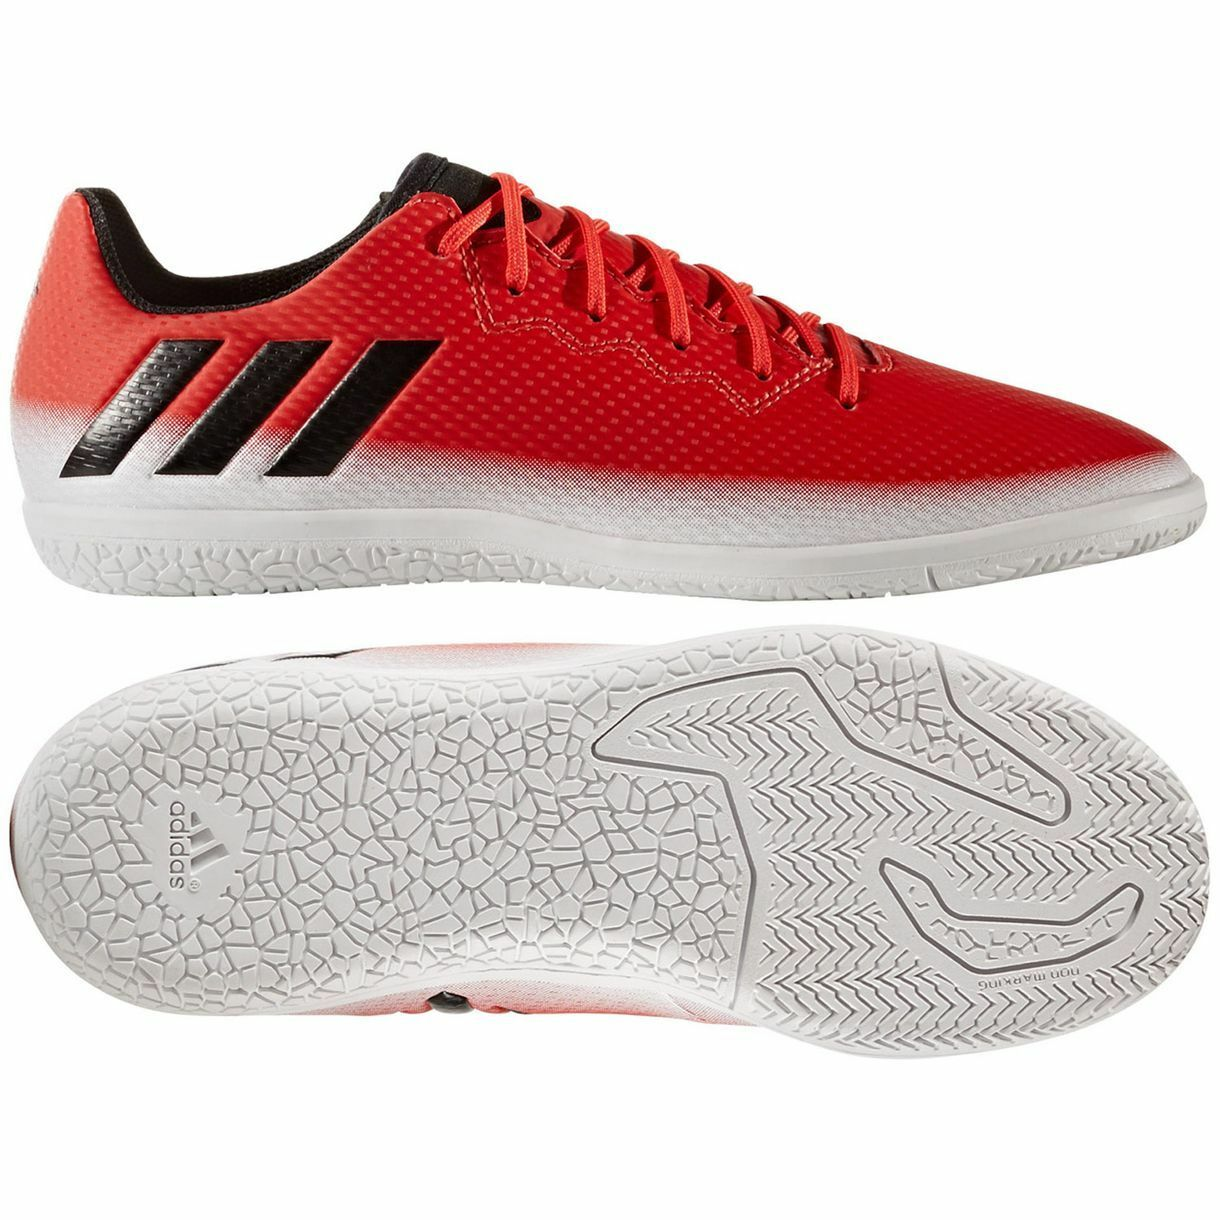 436b09aff25a adidas 17.3 IN Messi 2016 2016 2016 Indoor Soccer Shoes Red - Black - White  Kids - Youth bd83b2